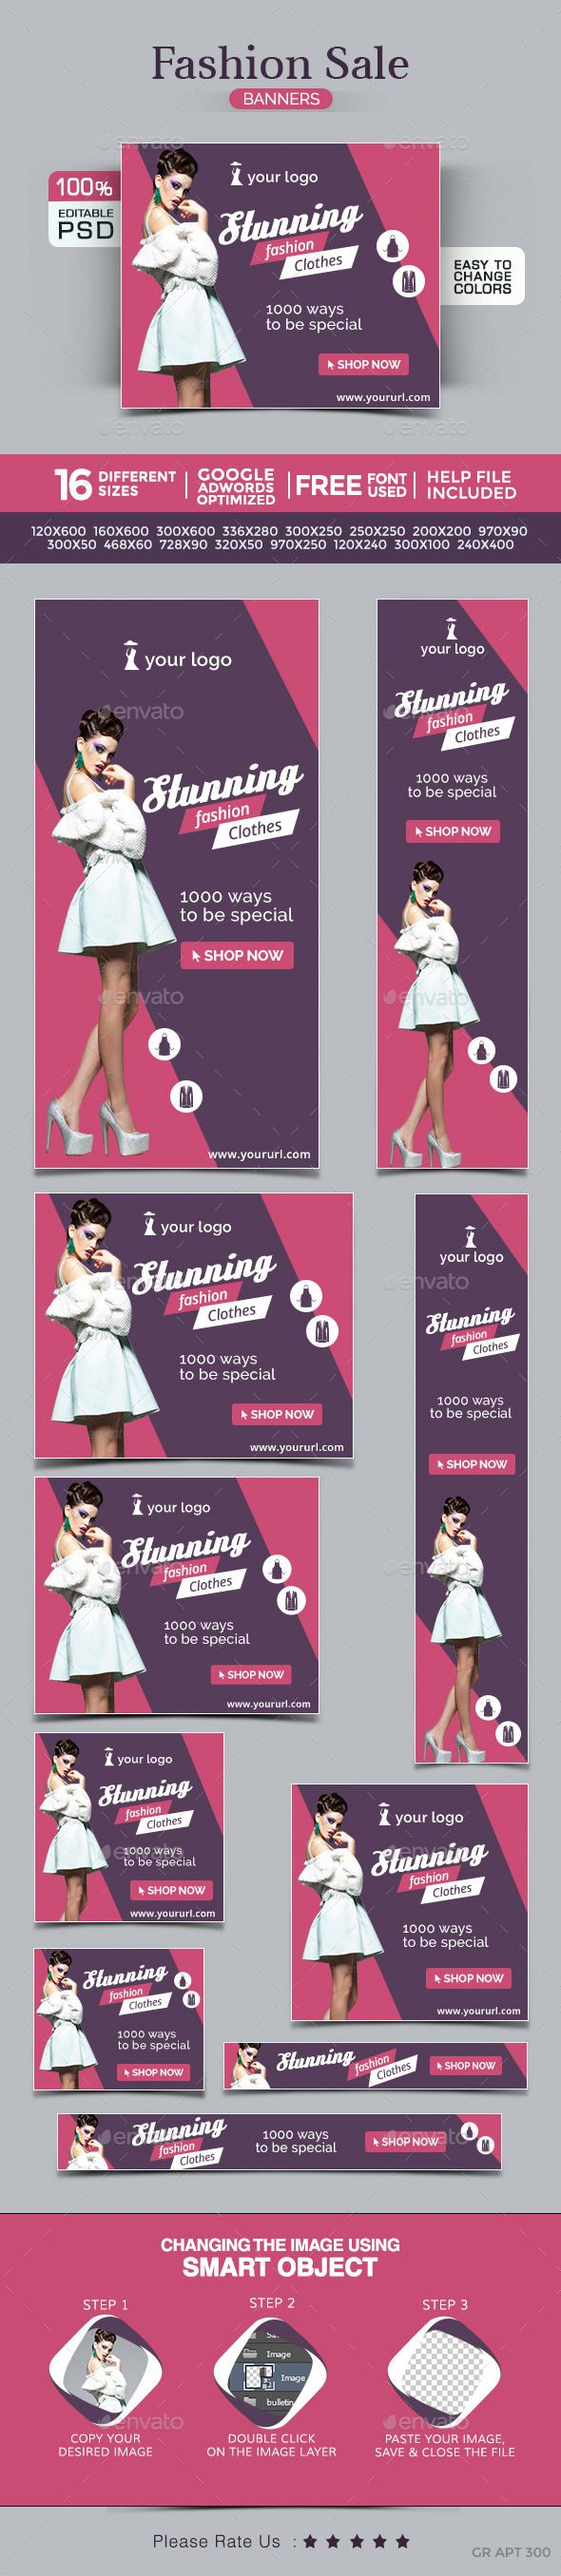 Fashion Banners | Download: http://graphicriver.net/item/fashion-banners/10320617?ref=ksioks